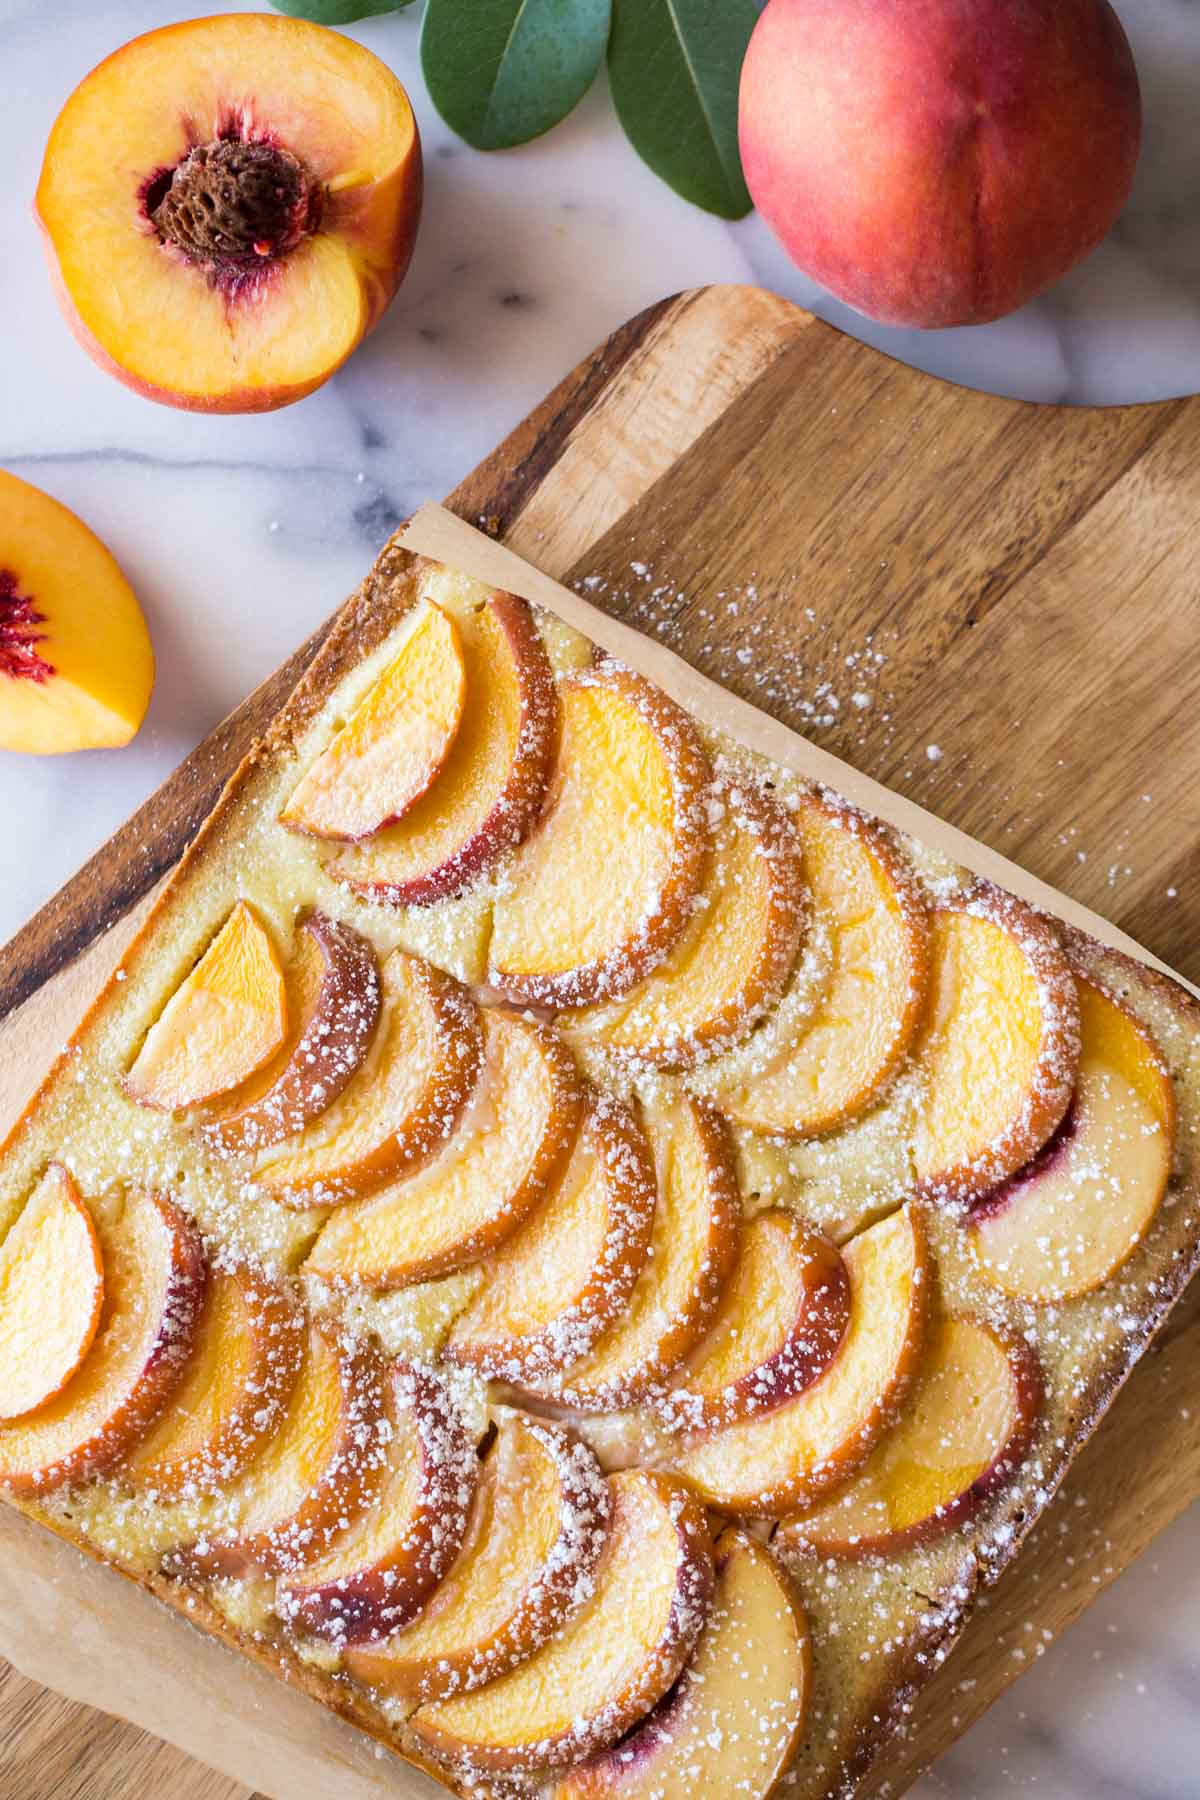 Peaches and Cream Shortbread Bars on a cutting board, with whole and cut peaches next to the board.